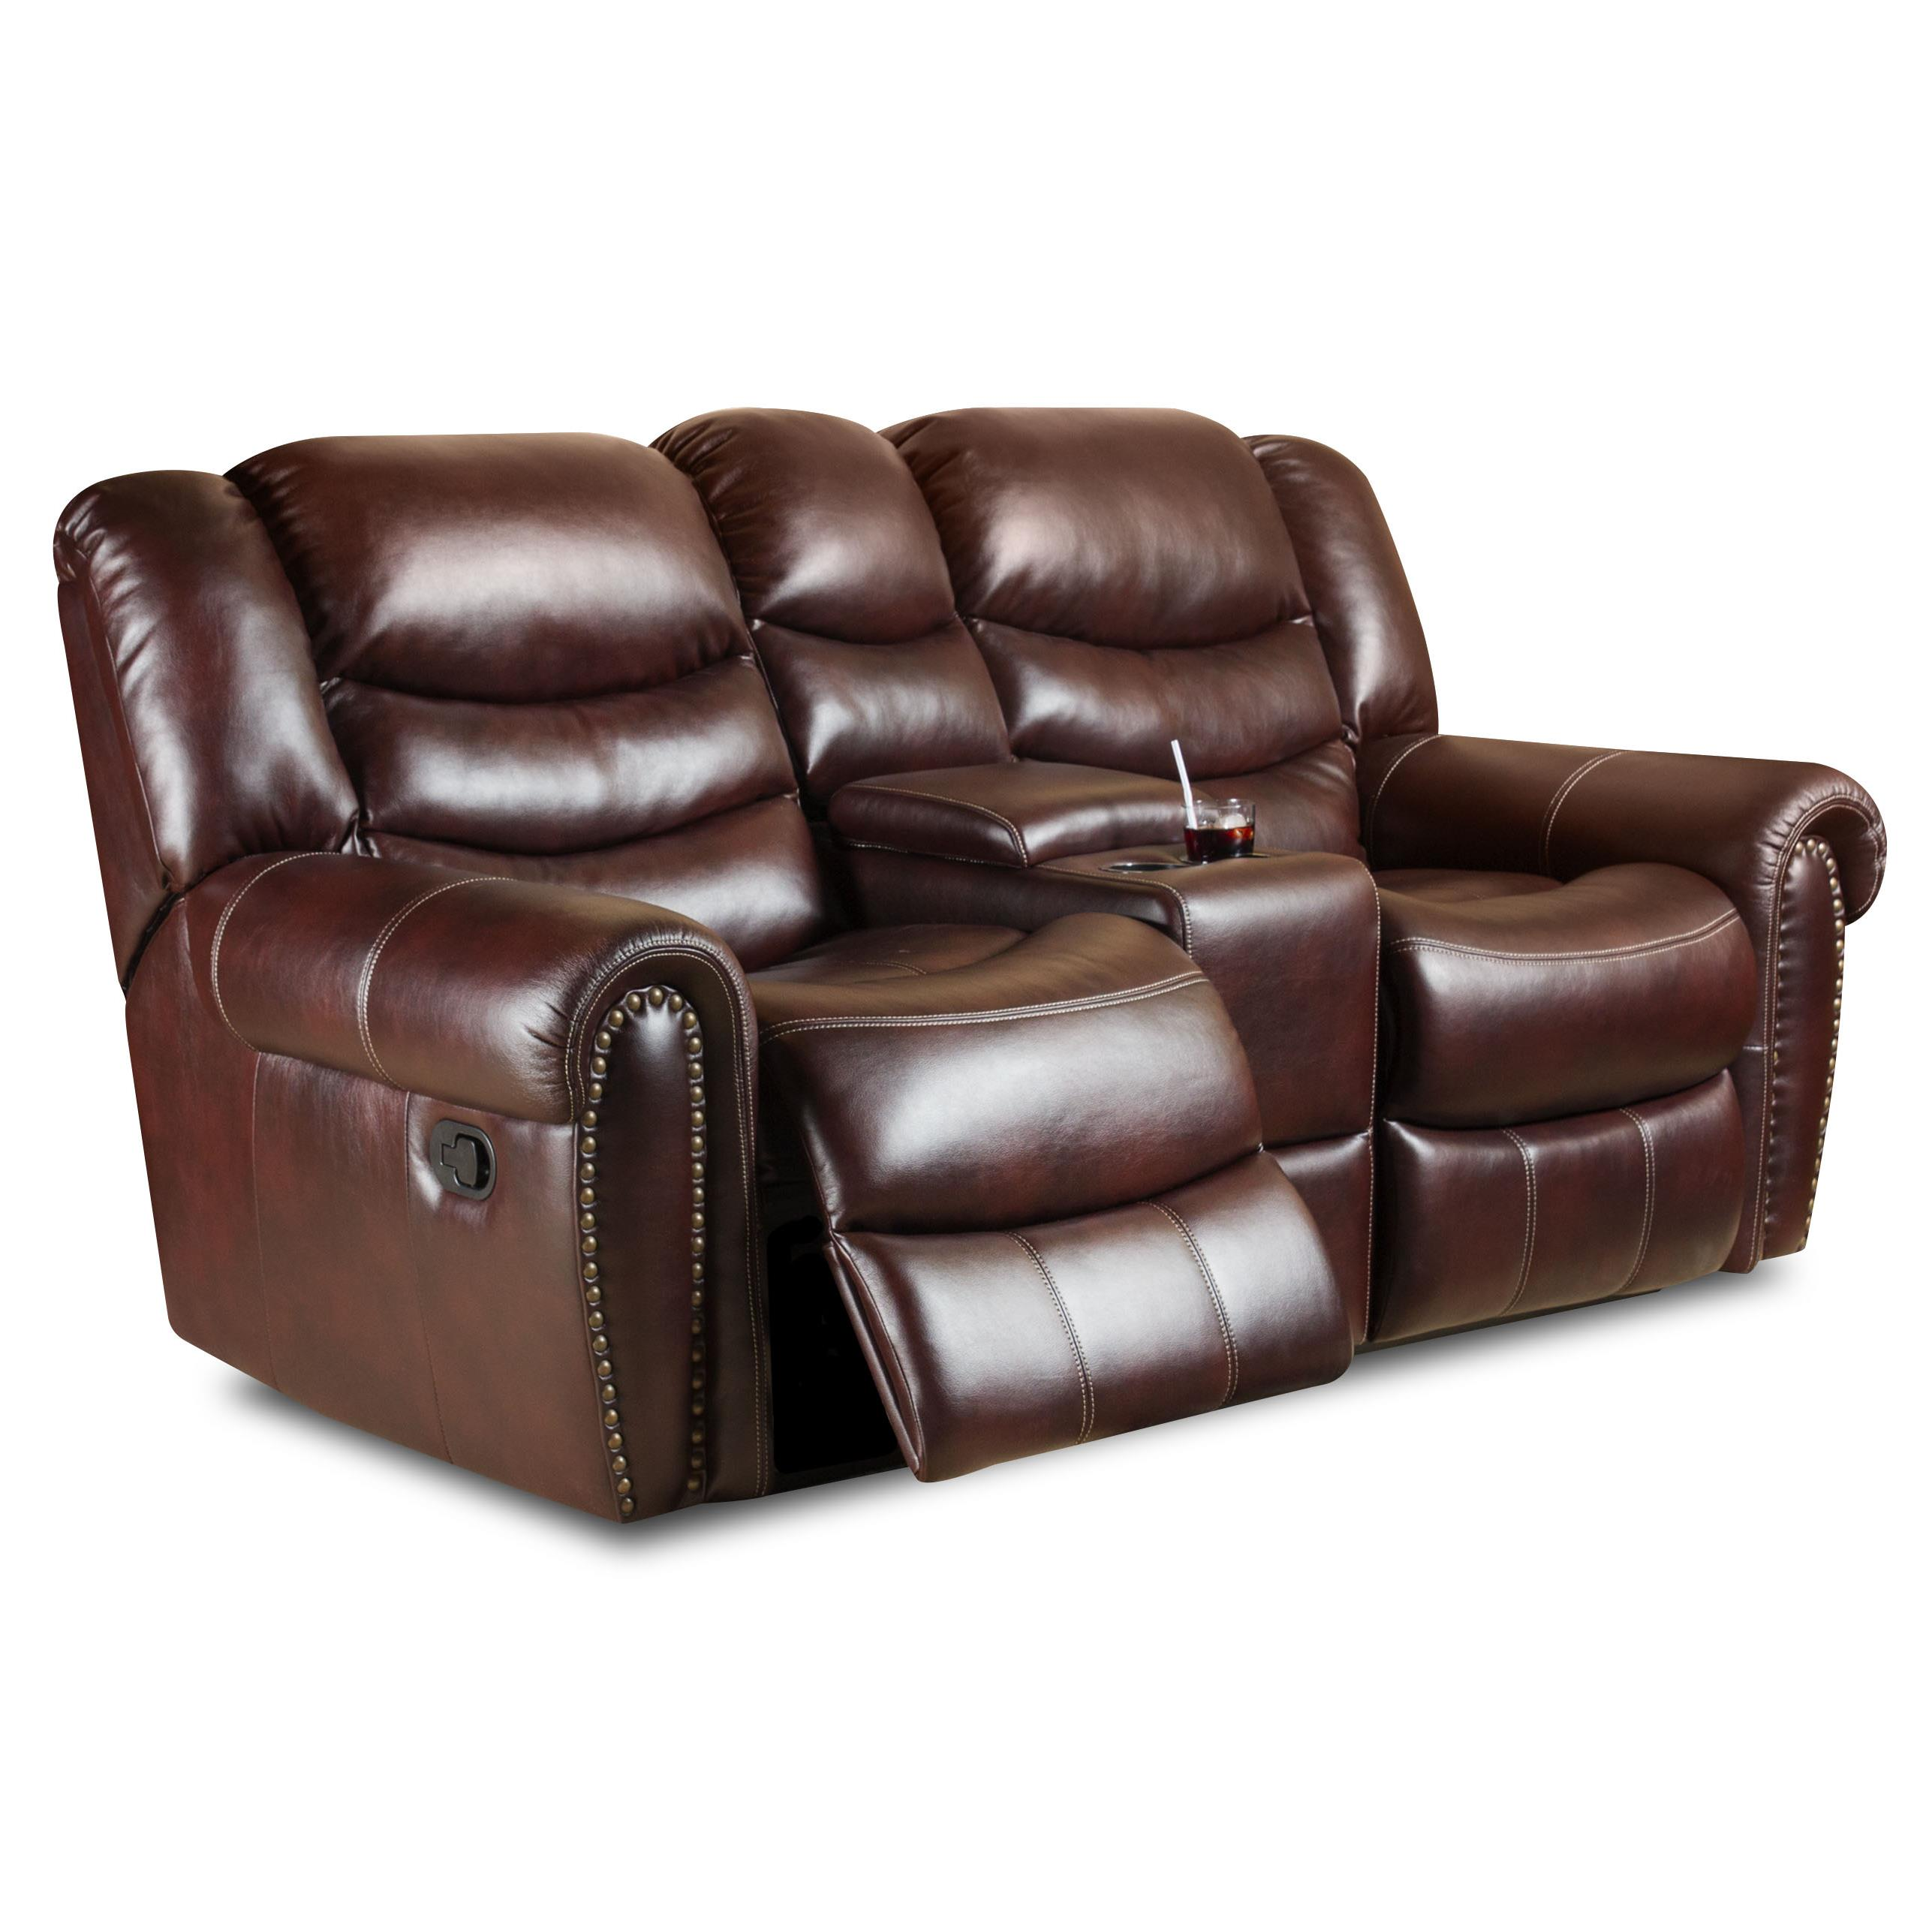 box cl loveseat aniline kardiel wal walnut tan woodrow